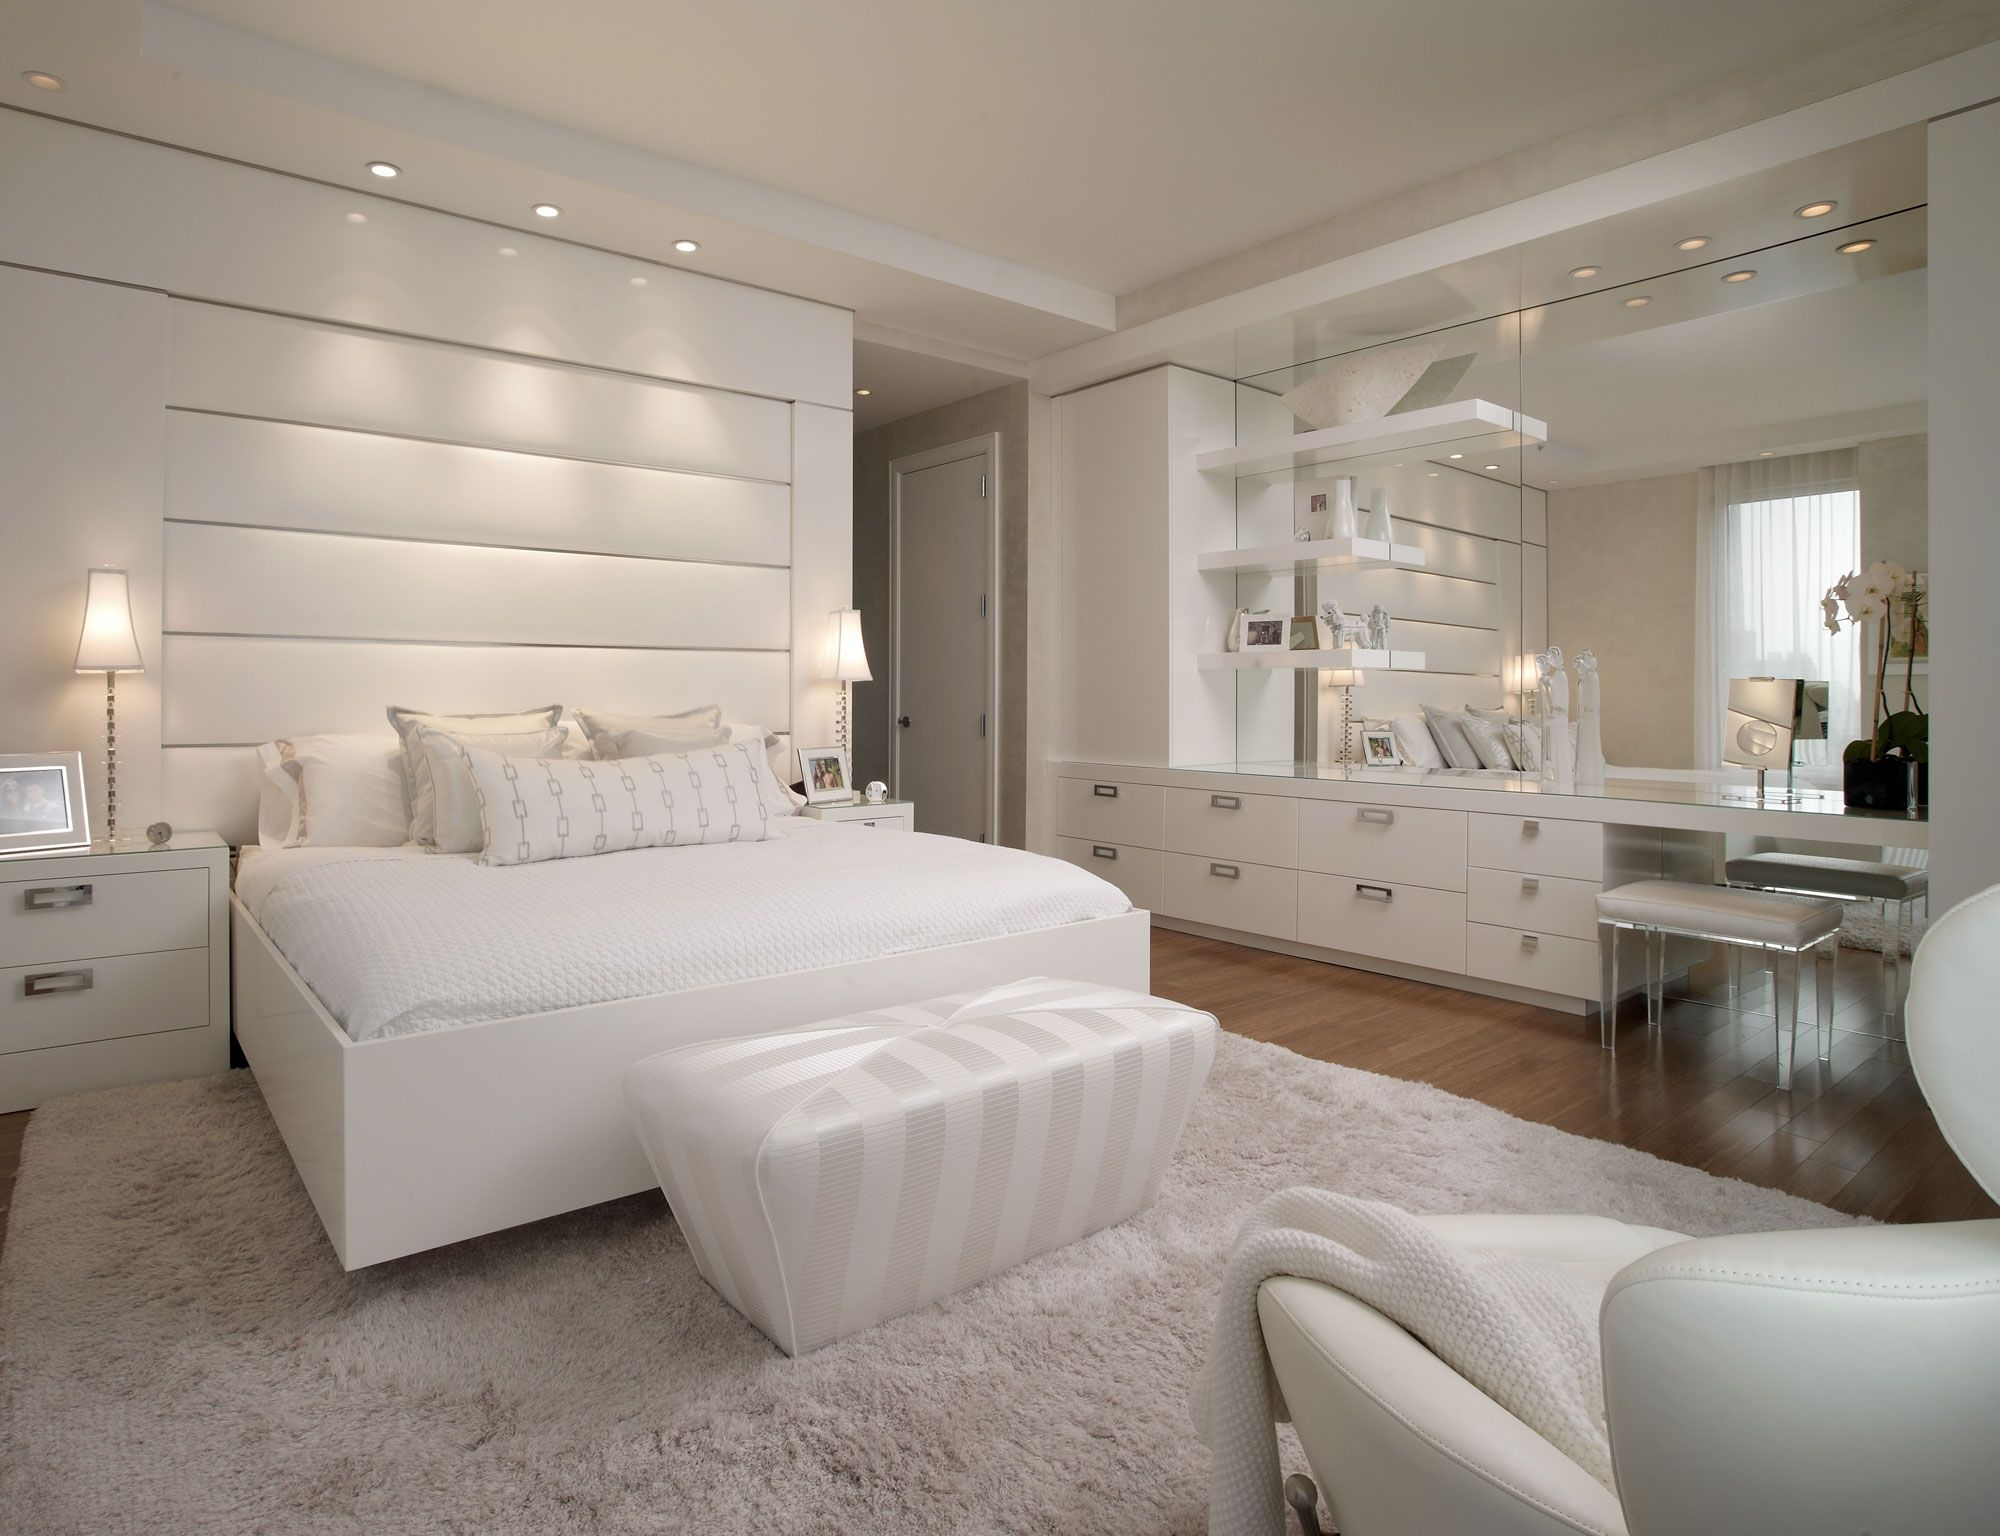 Luxury all white bedroom decorating ideas amazing for Bedroom inspiration